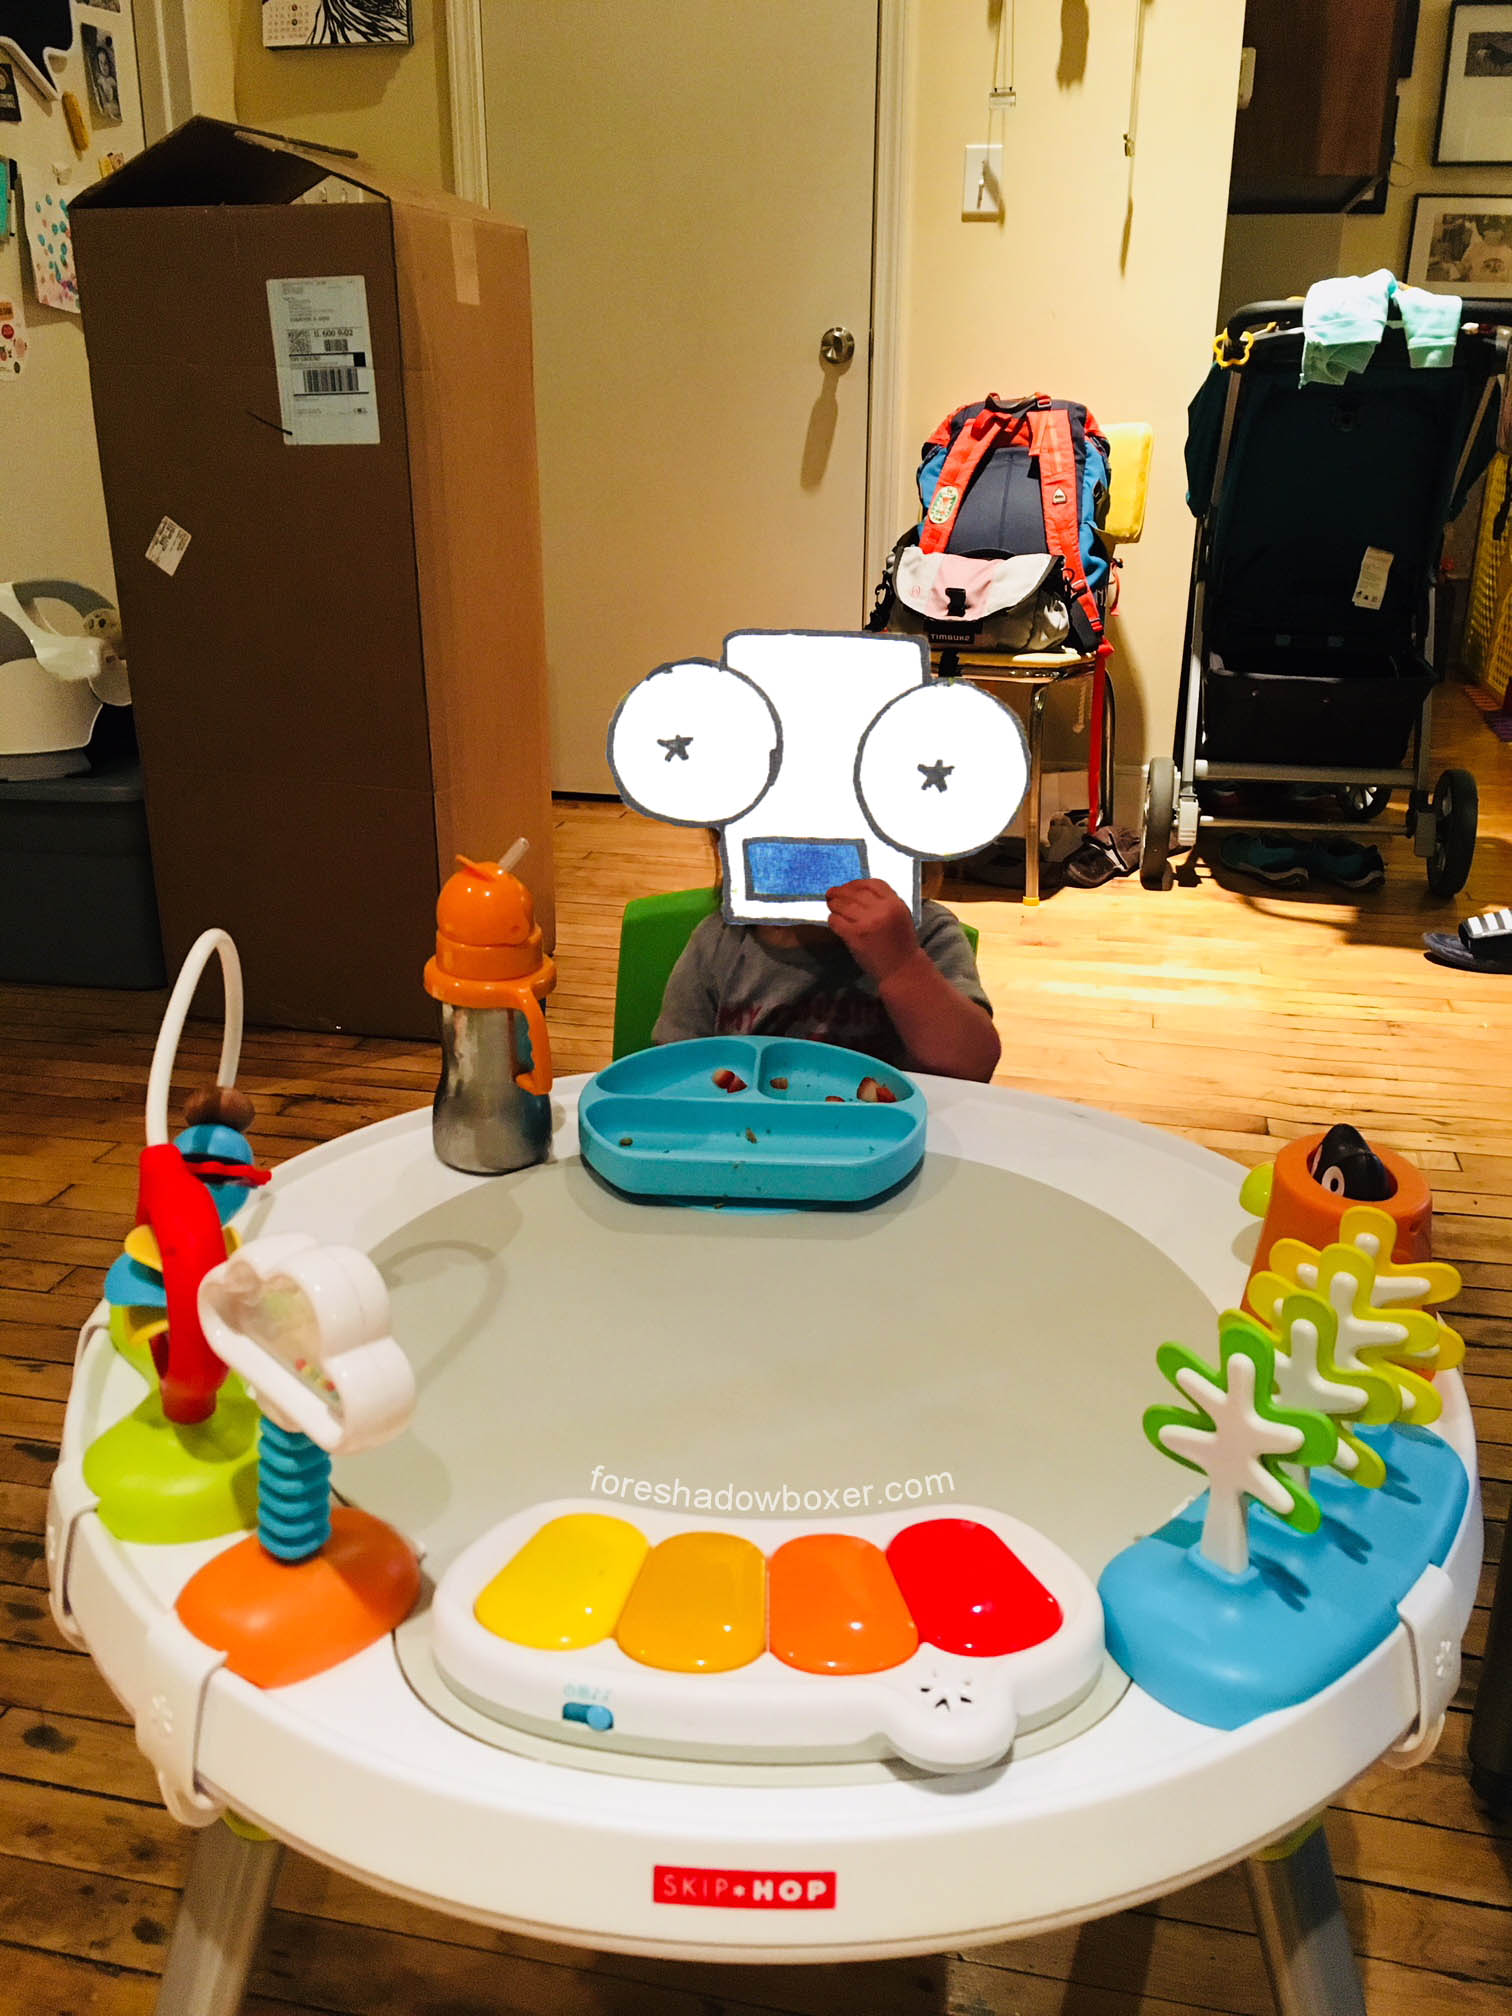 Toys shown are removable; we remove them all when a bigger play/dining/coloring surface is needed.